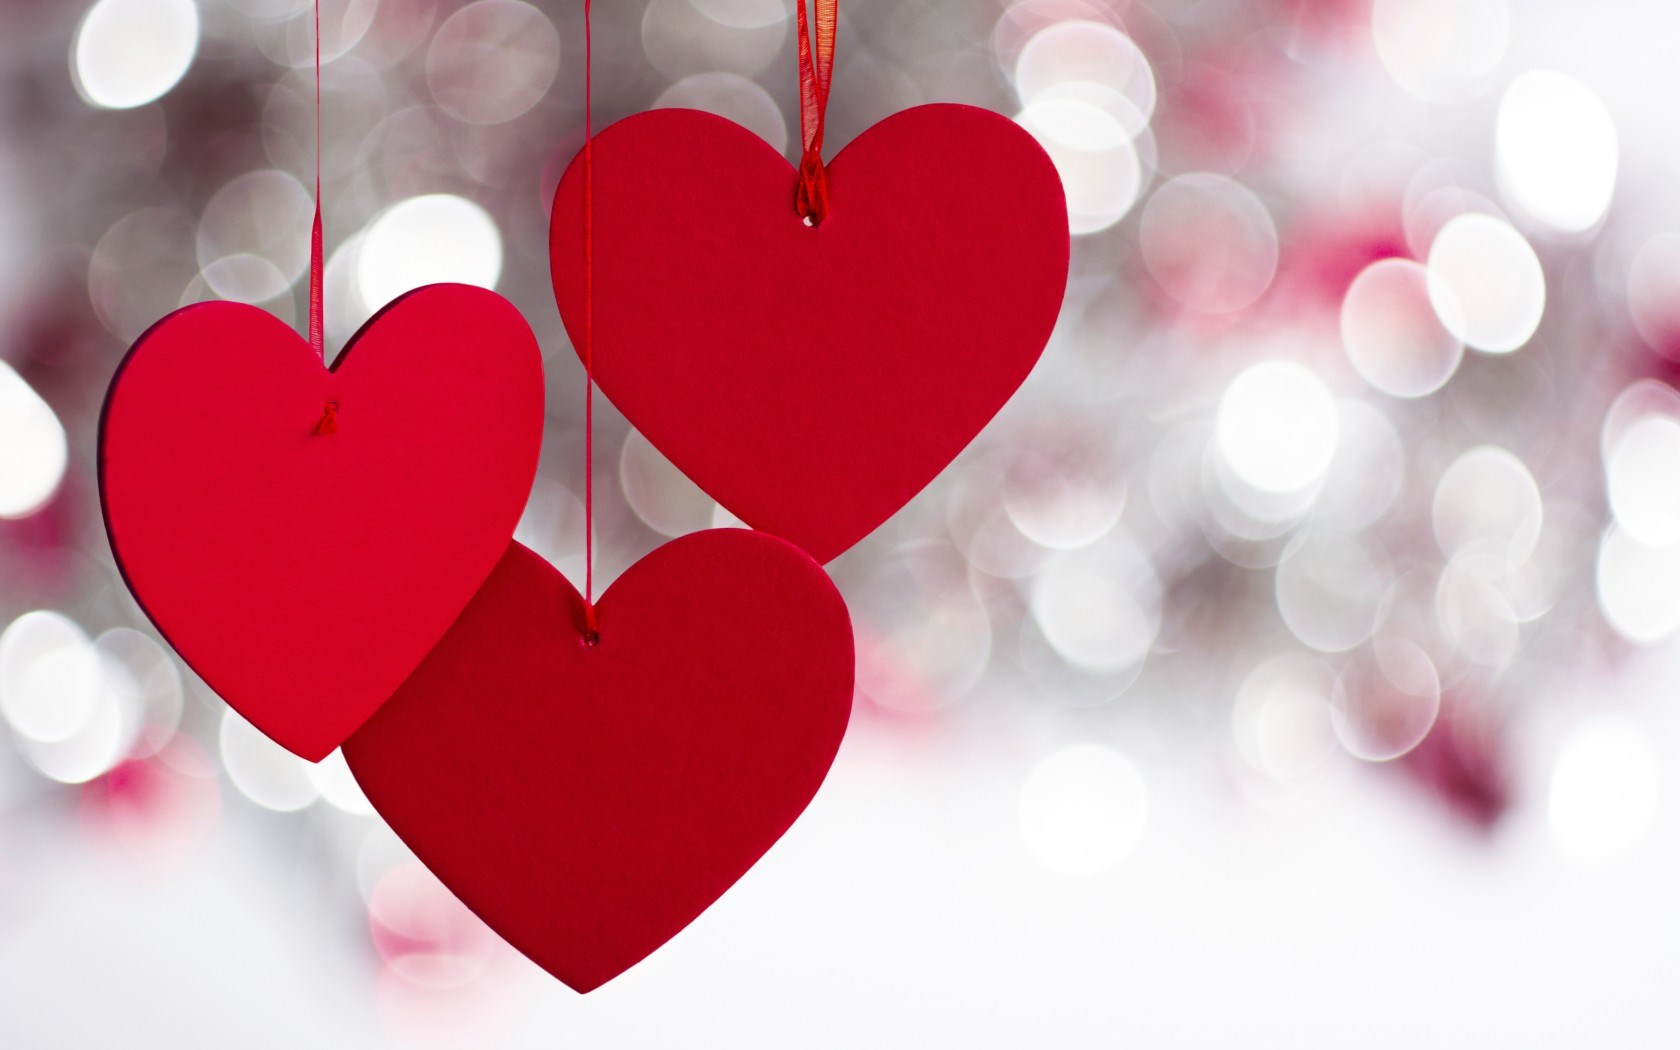 Red Hearts Sparkle Lovely Valentine Day Bokeh Photo